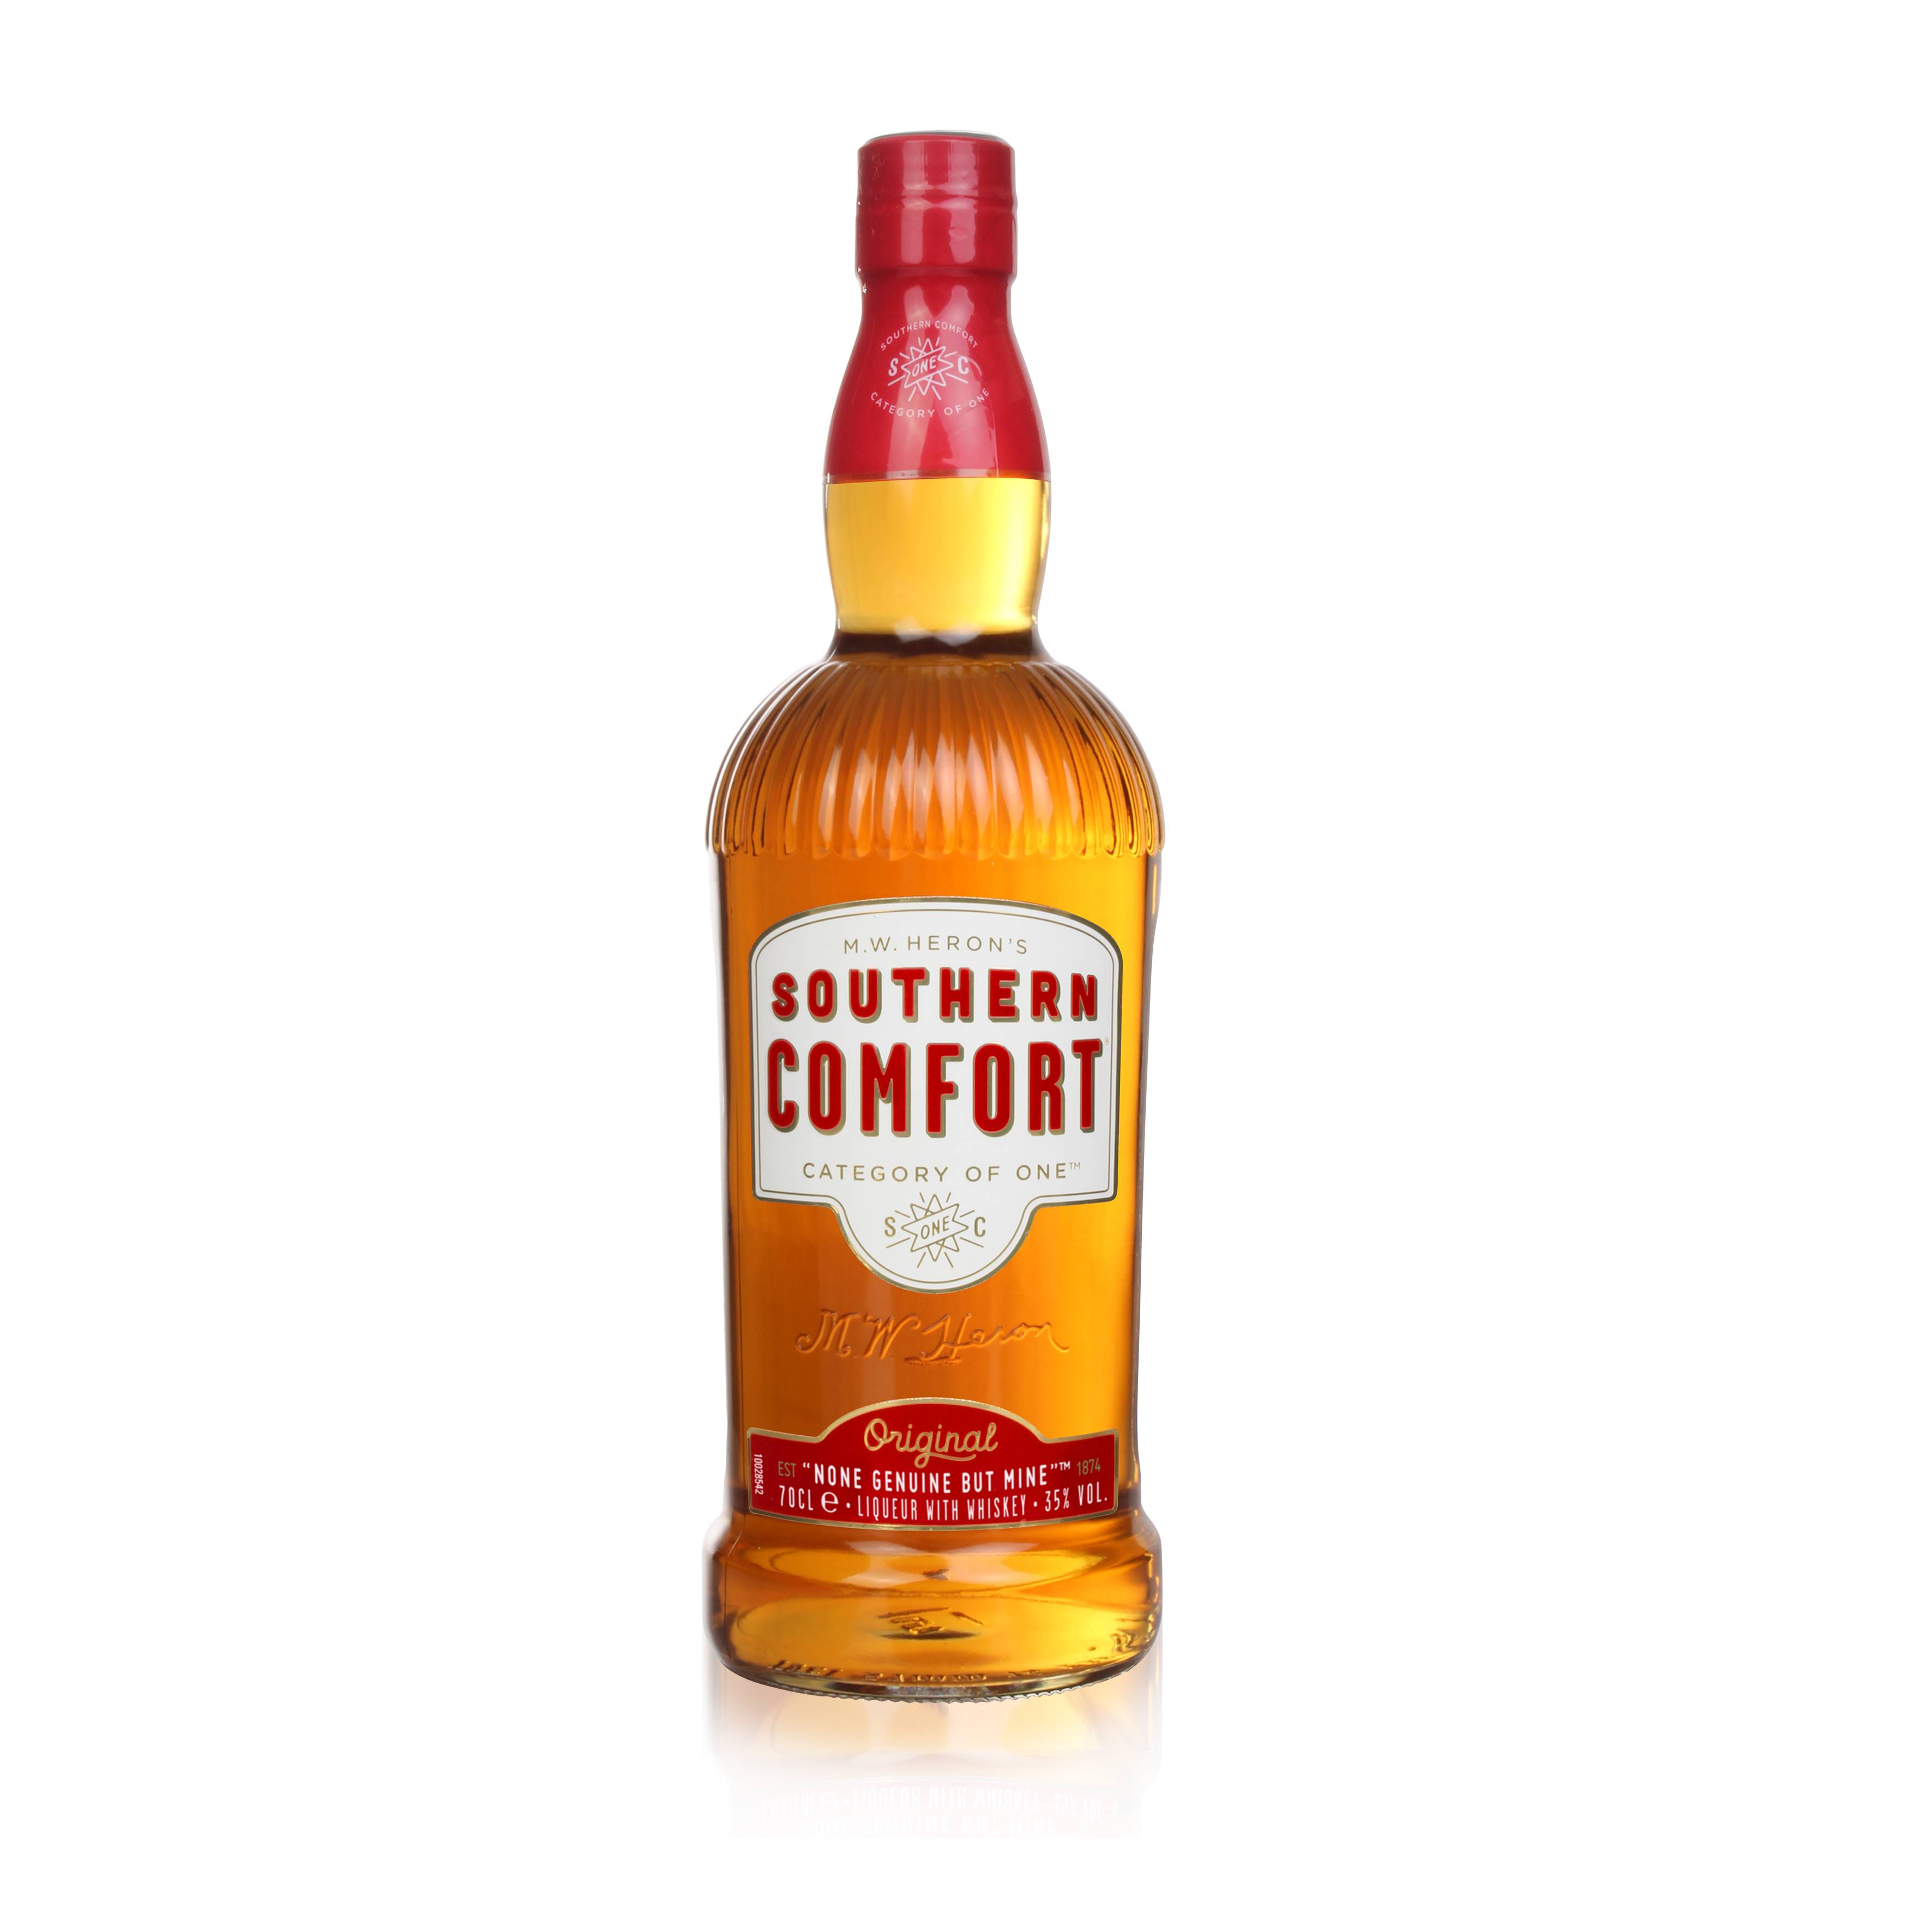 Southern Comfort Related Stories Talking Retail